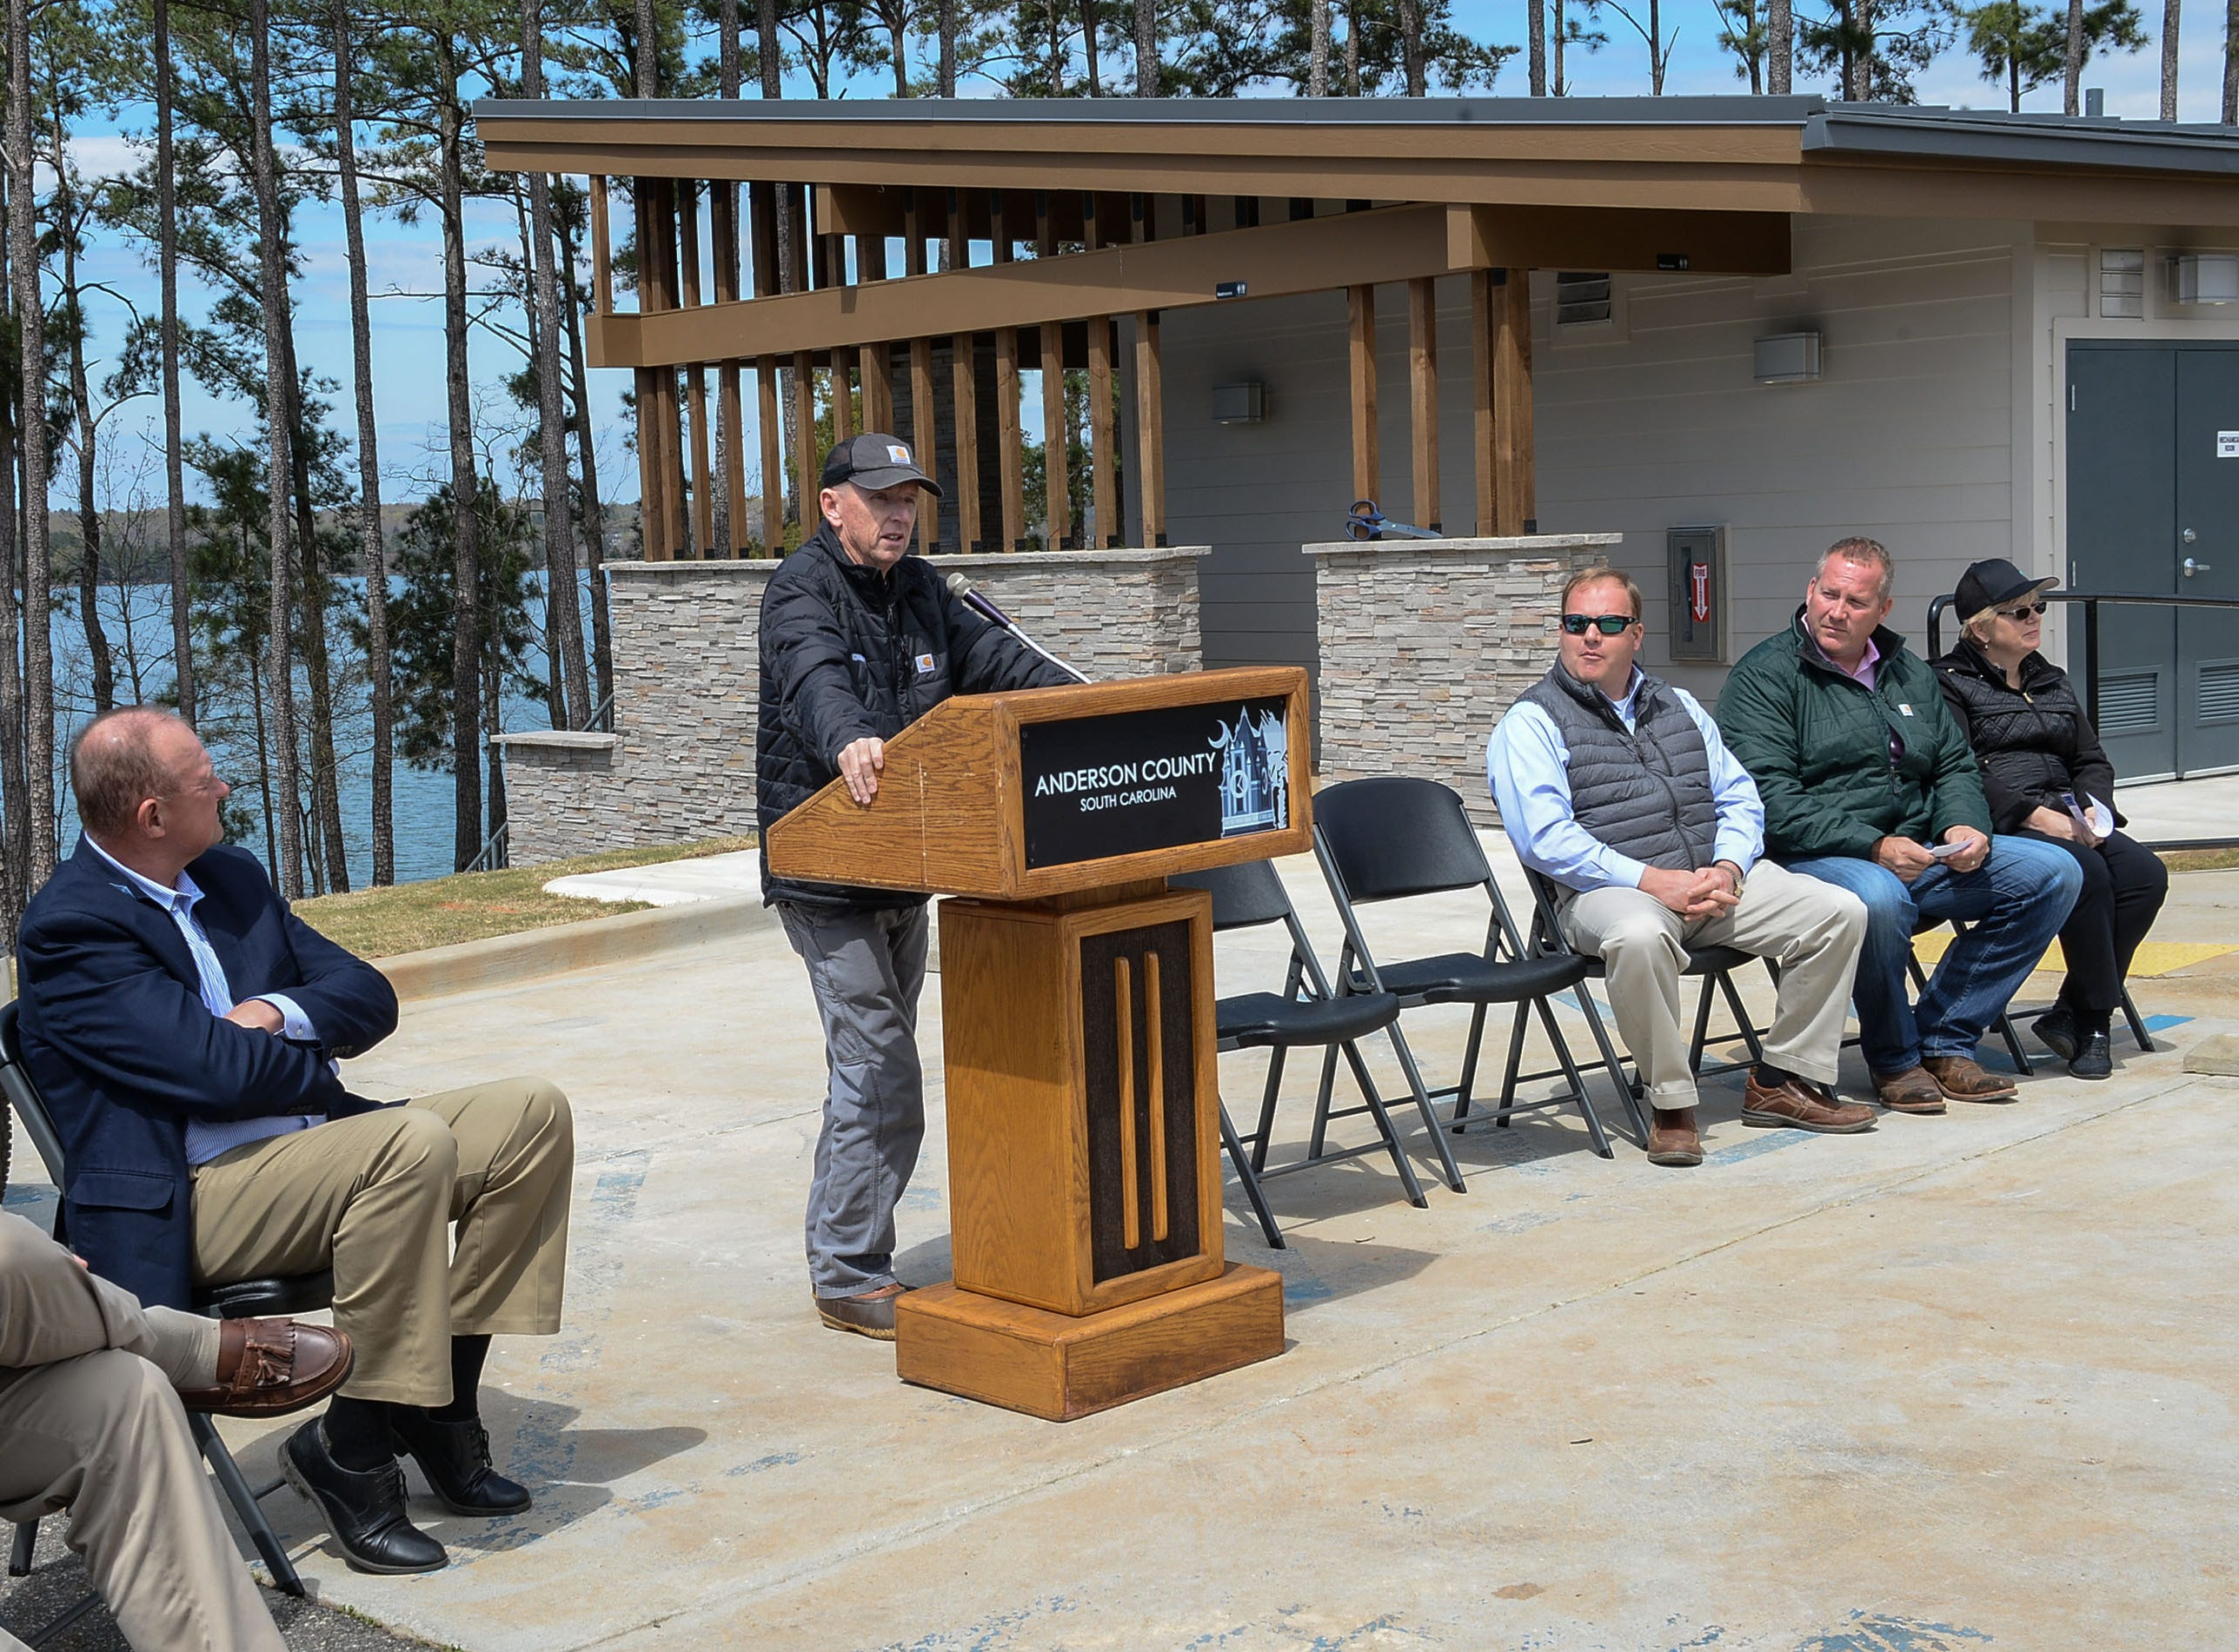 Trip Wheldon of B.A.S.S. Tournament Director, speaks during the Green Pond Landing & Event Center Facilities ribbon cutting event in Anderson Tuesday. The BASSMASTER Elite series event starts Thursday, April 4 and lasts through April 7.